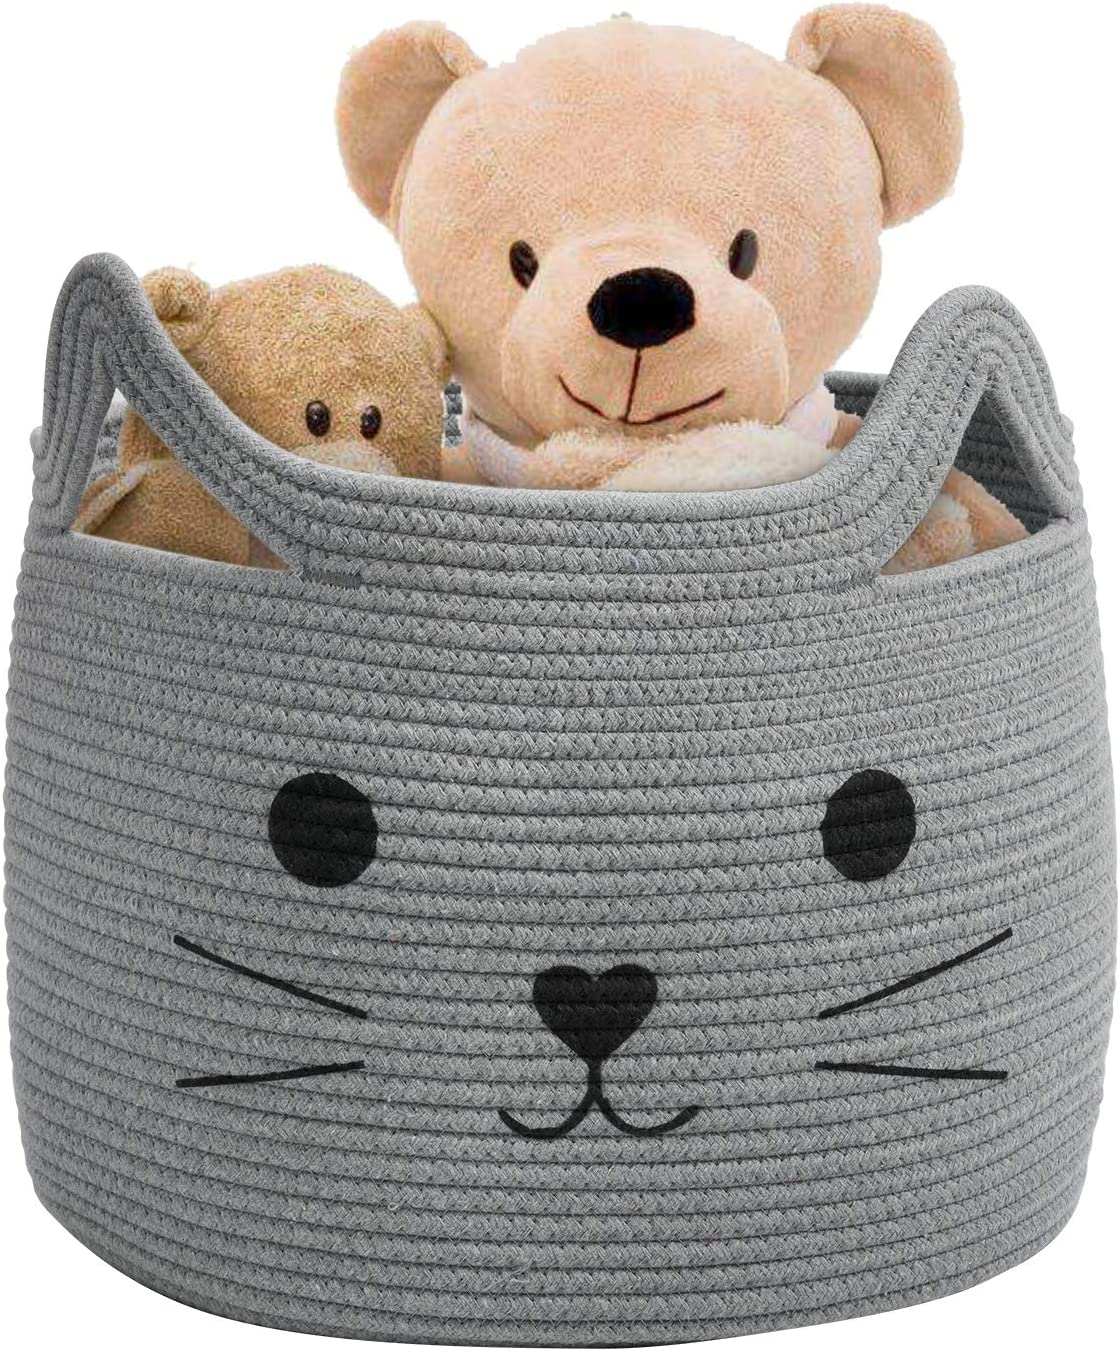 Pet Gift Basket for Cat 15.7 L/×13 W/×13.4 H Dog Towels Large Woven Jute Rope Storage Basket Gifts Clothes Blanket Laundry Basket Organizer for Toys